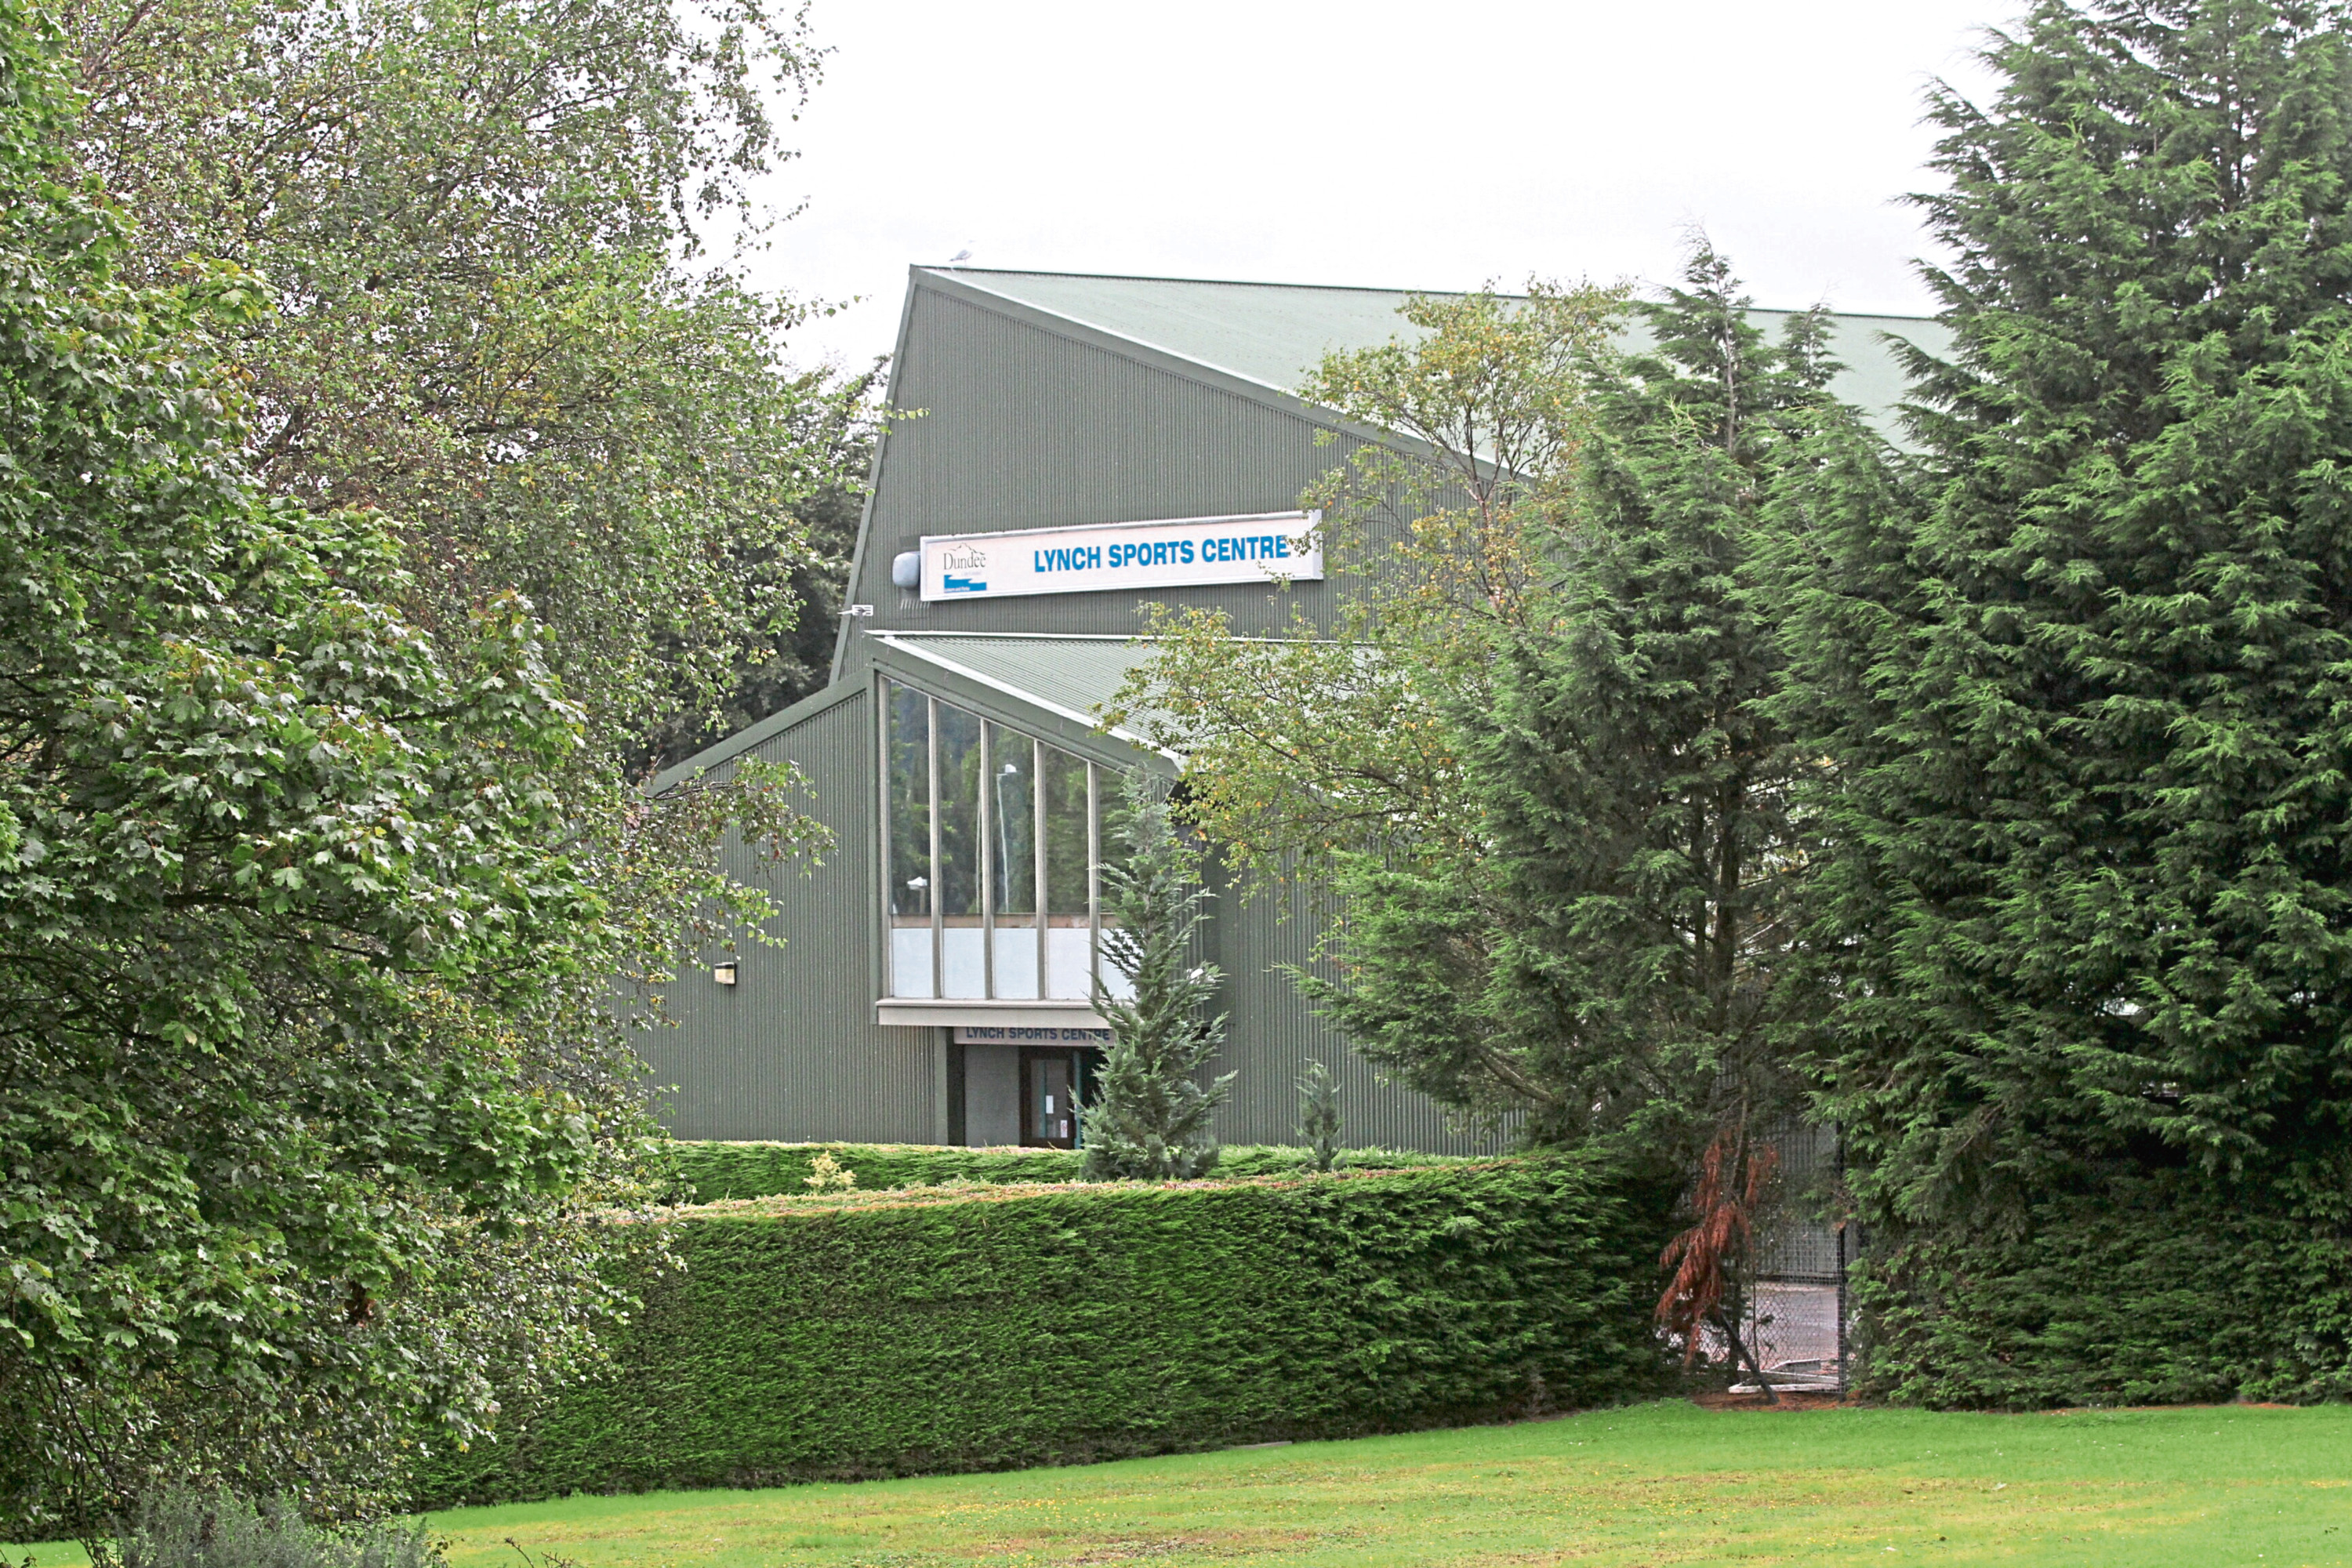 There have been fears expressed over the future of Lynch Sports Centre.